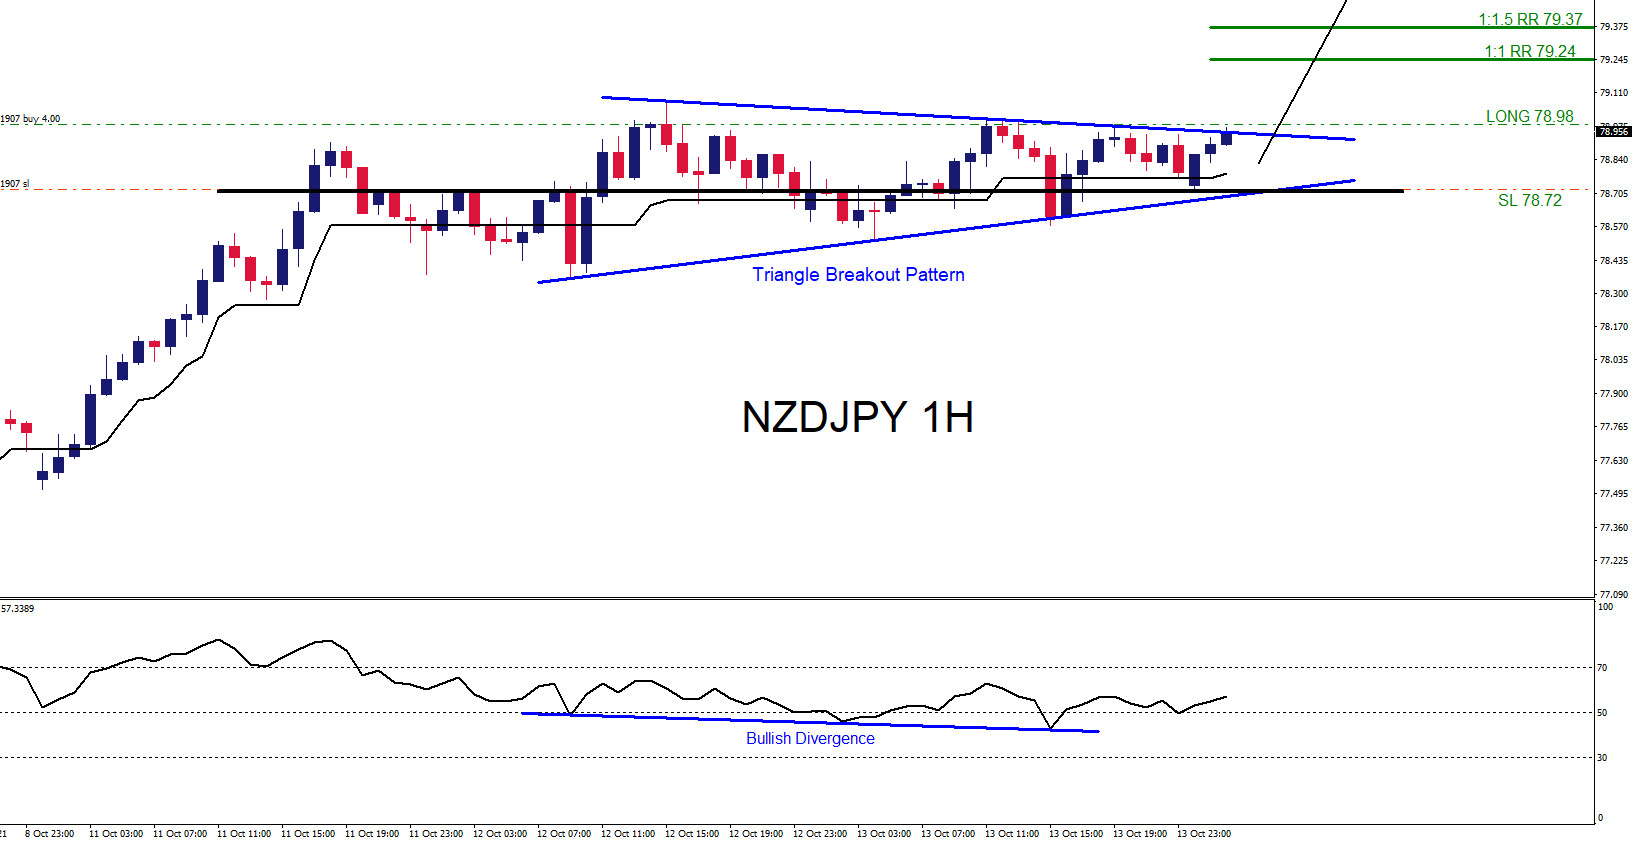 NZDJPY Moves Higher as Expected